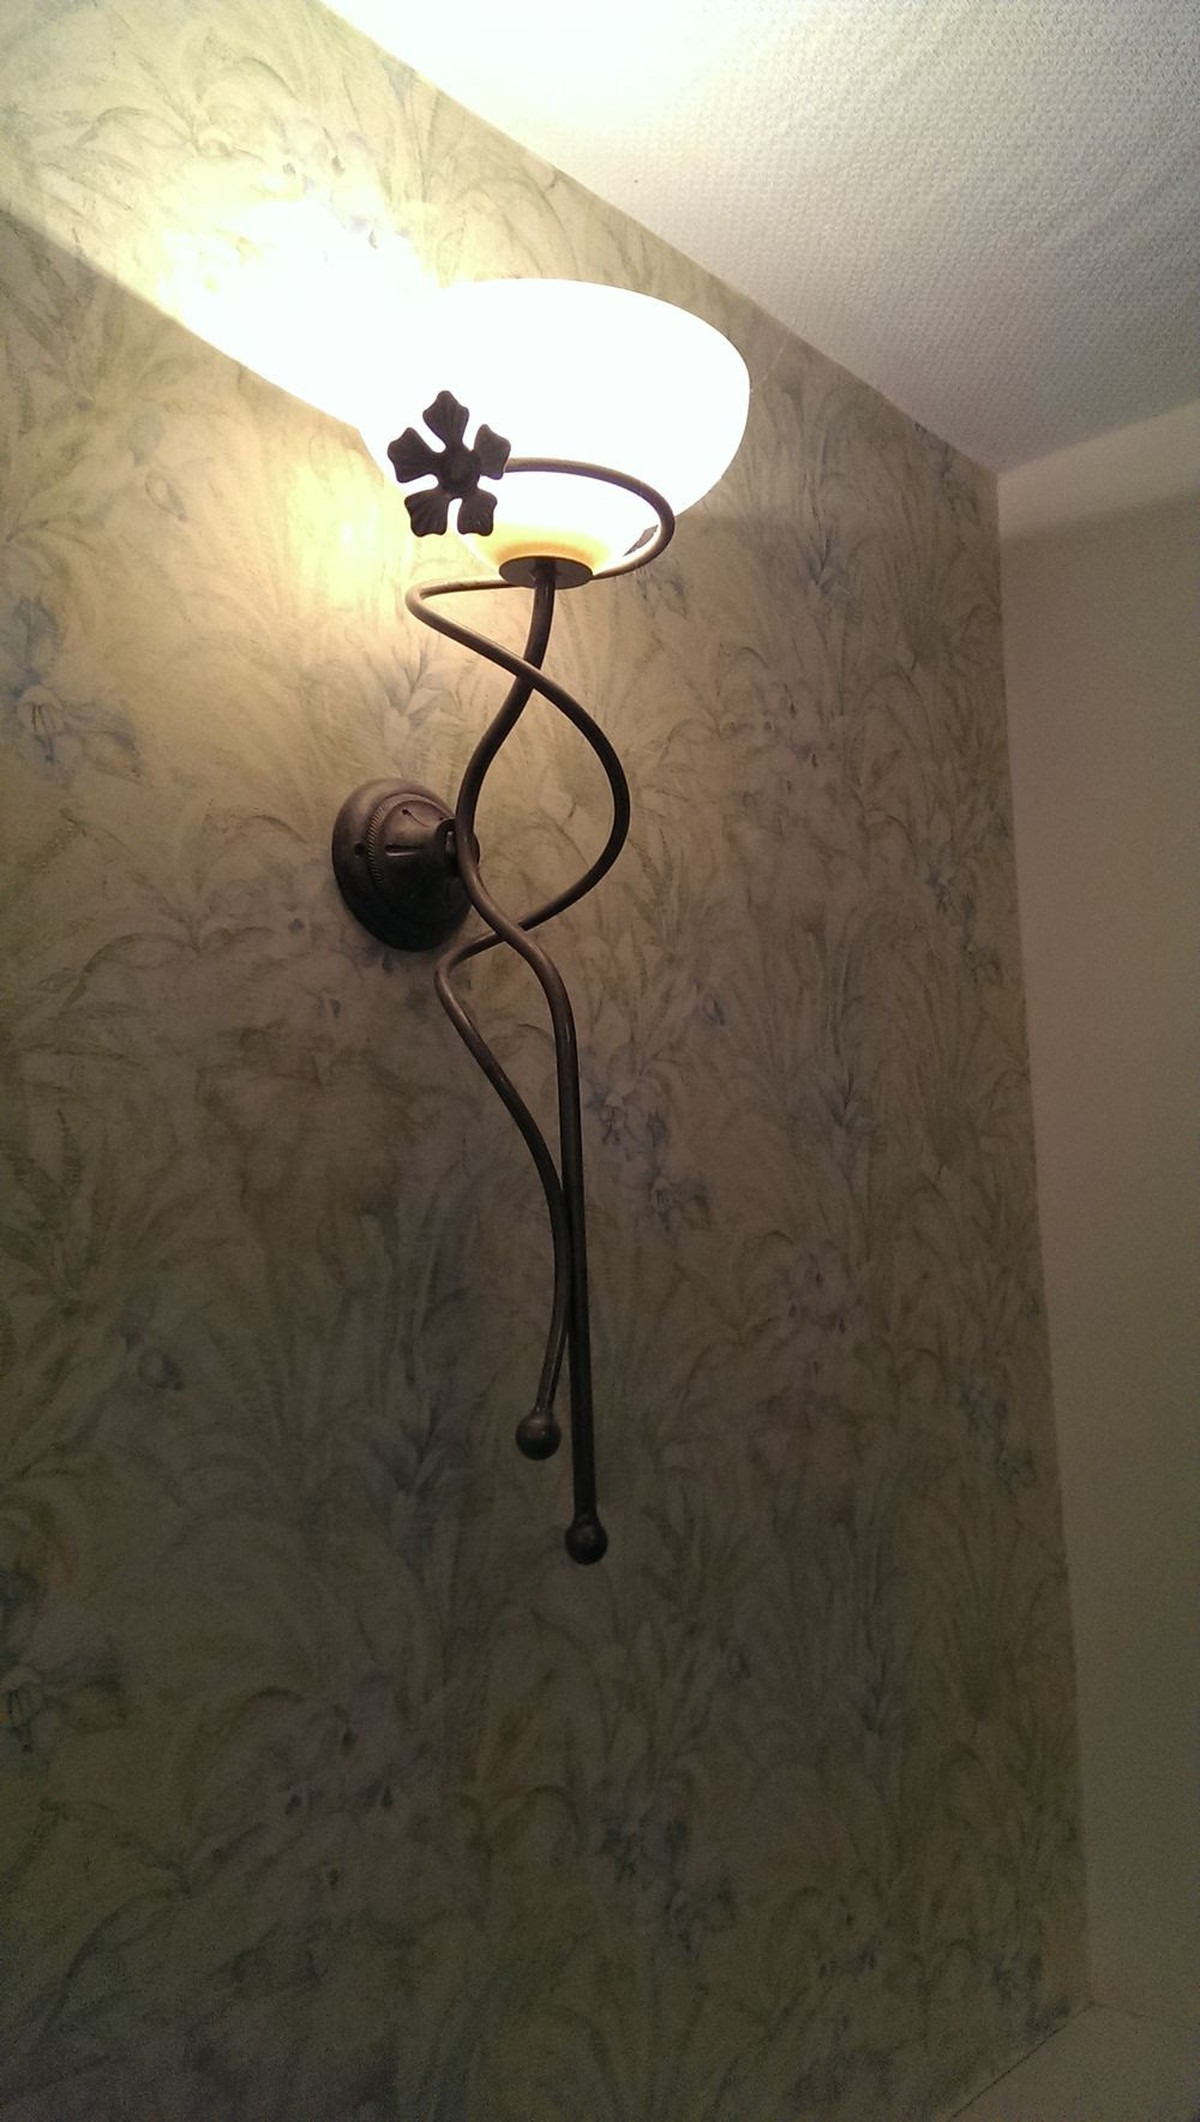 Secondhand hotel furniture lighting 18x wrought iron wall lights wrought iron wall lights wall lights for sale aloadofball Choice Image